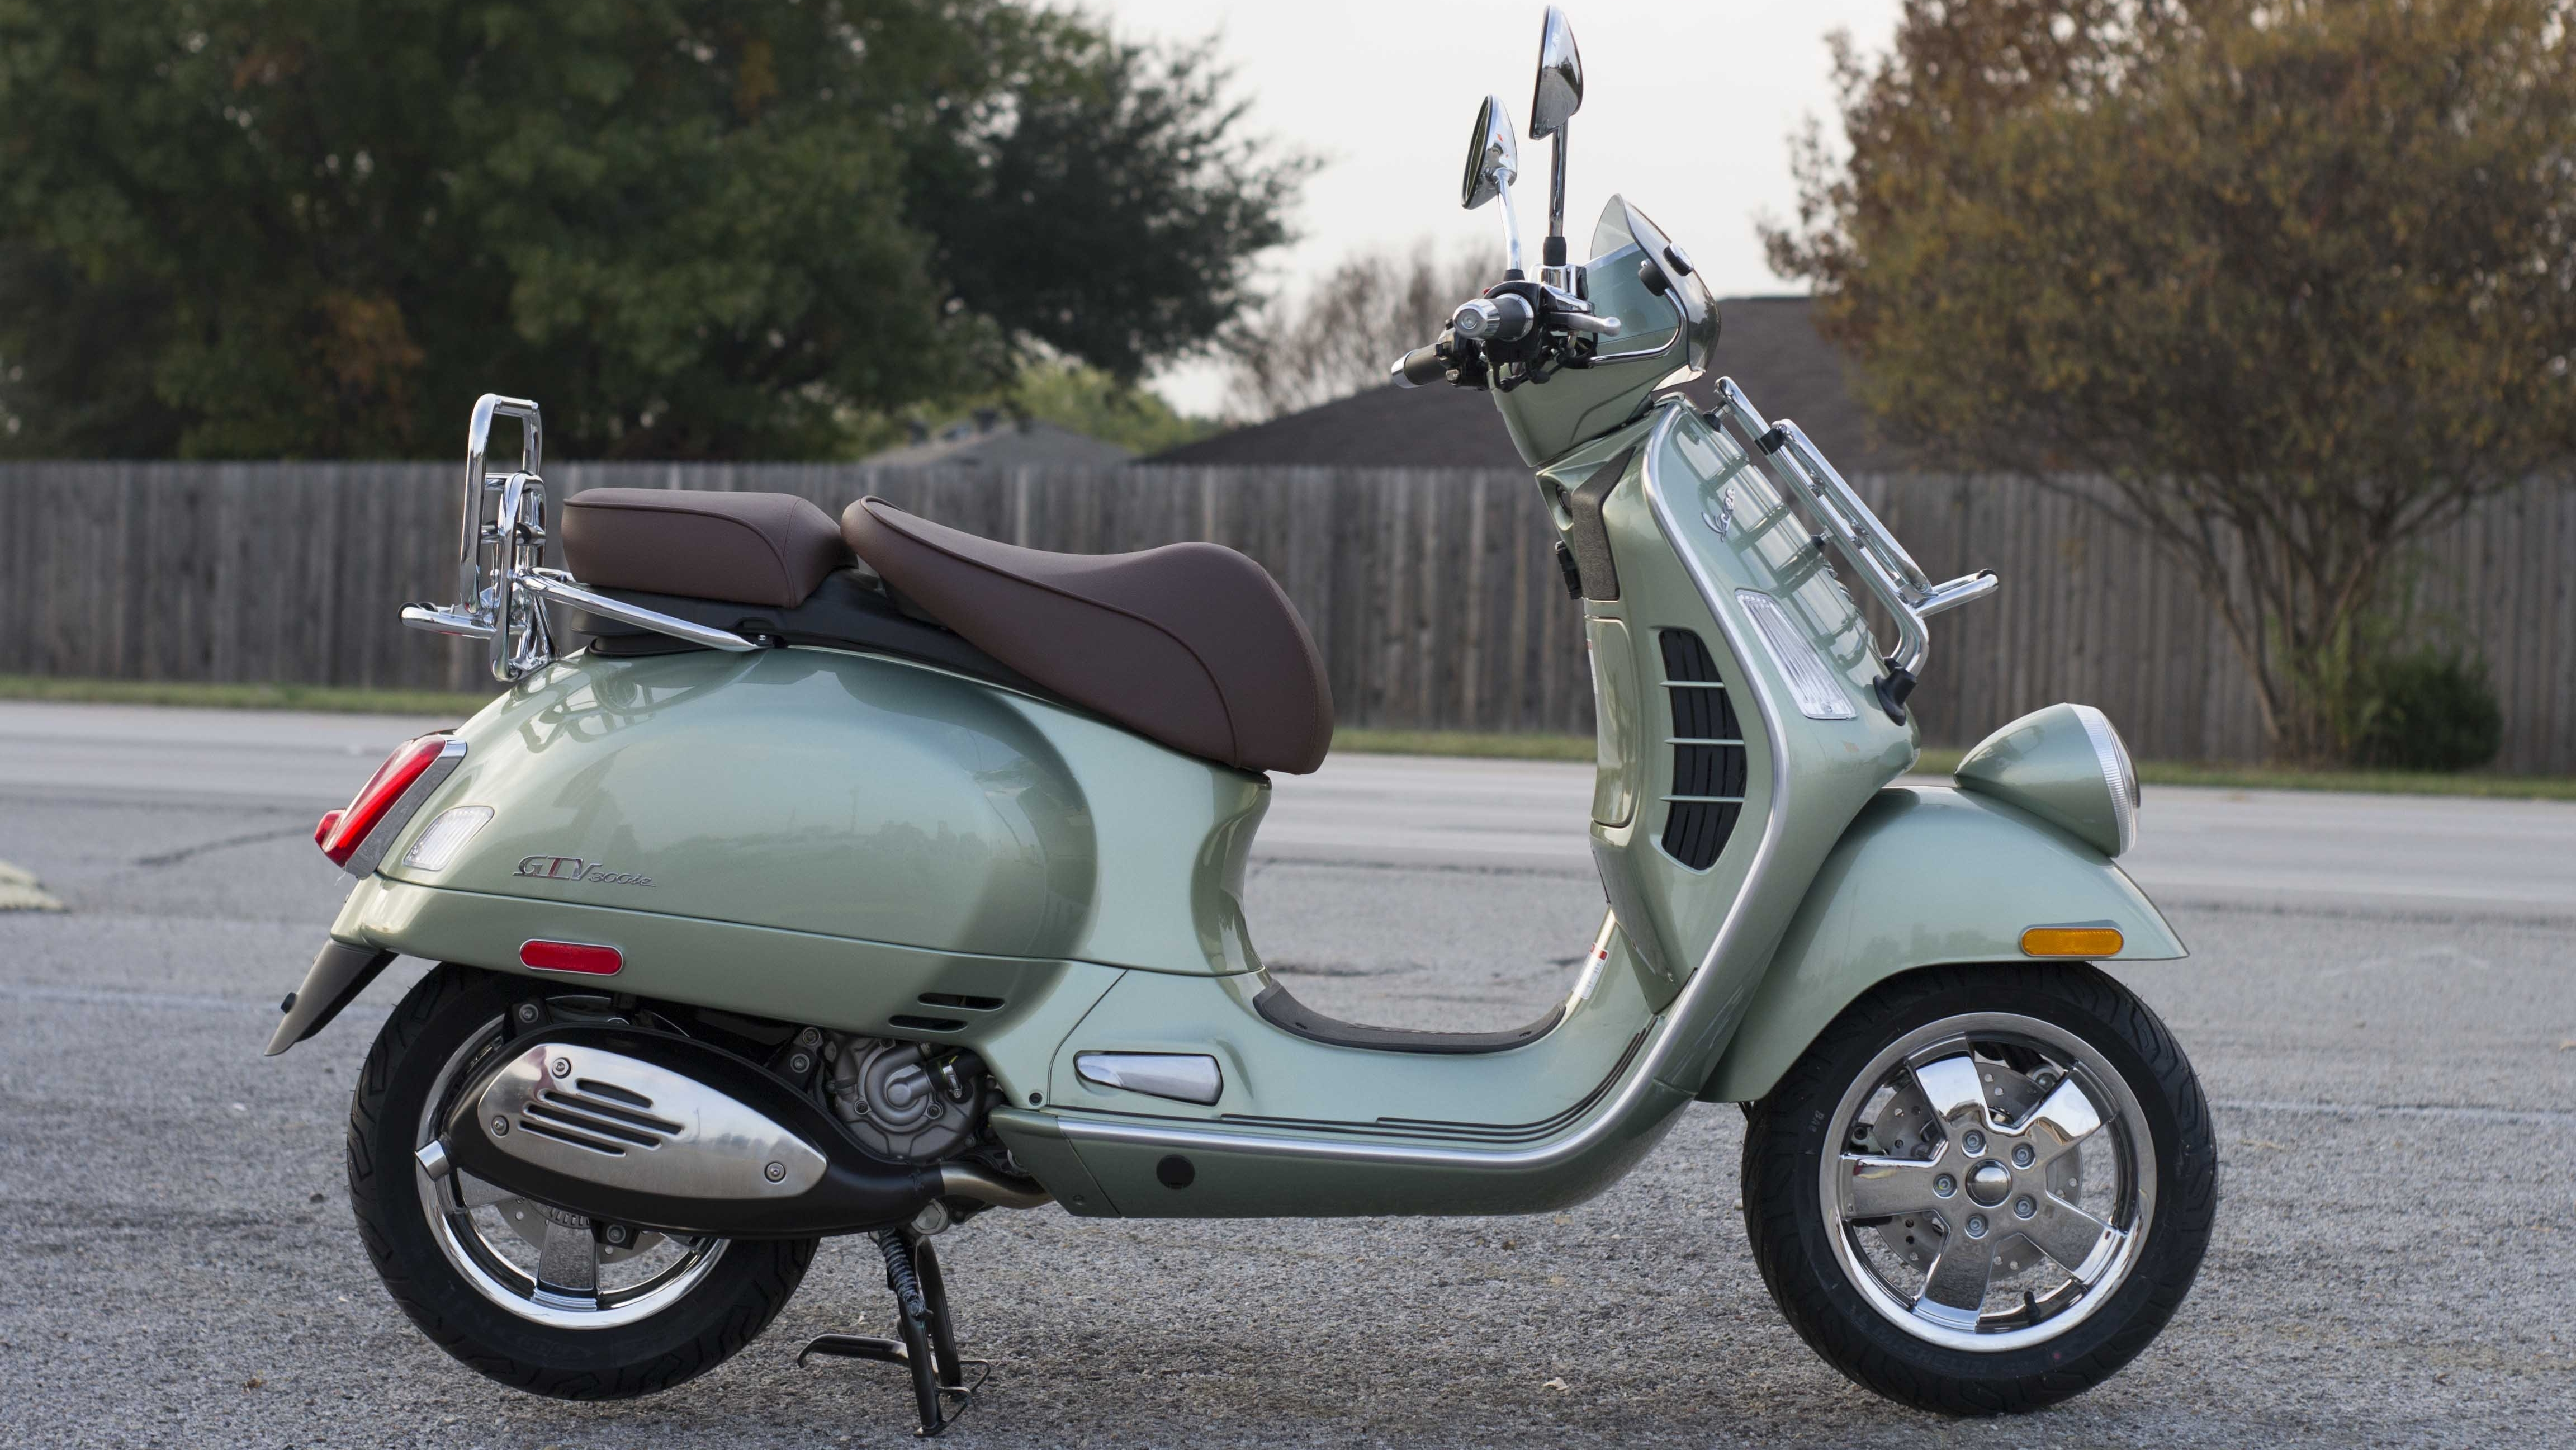 2016 2017 Vespa Gtv 300 Abs Pictures Photos Wallpapers